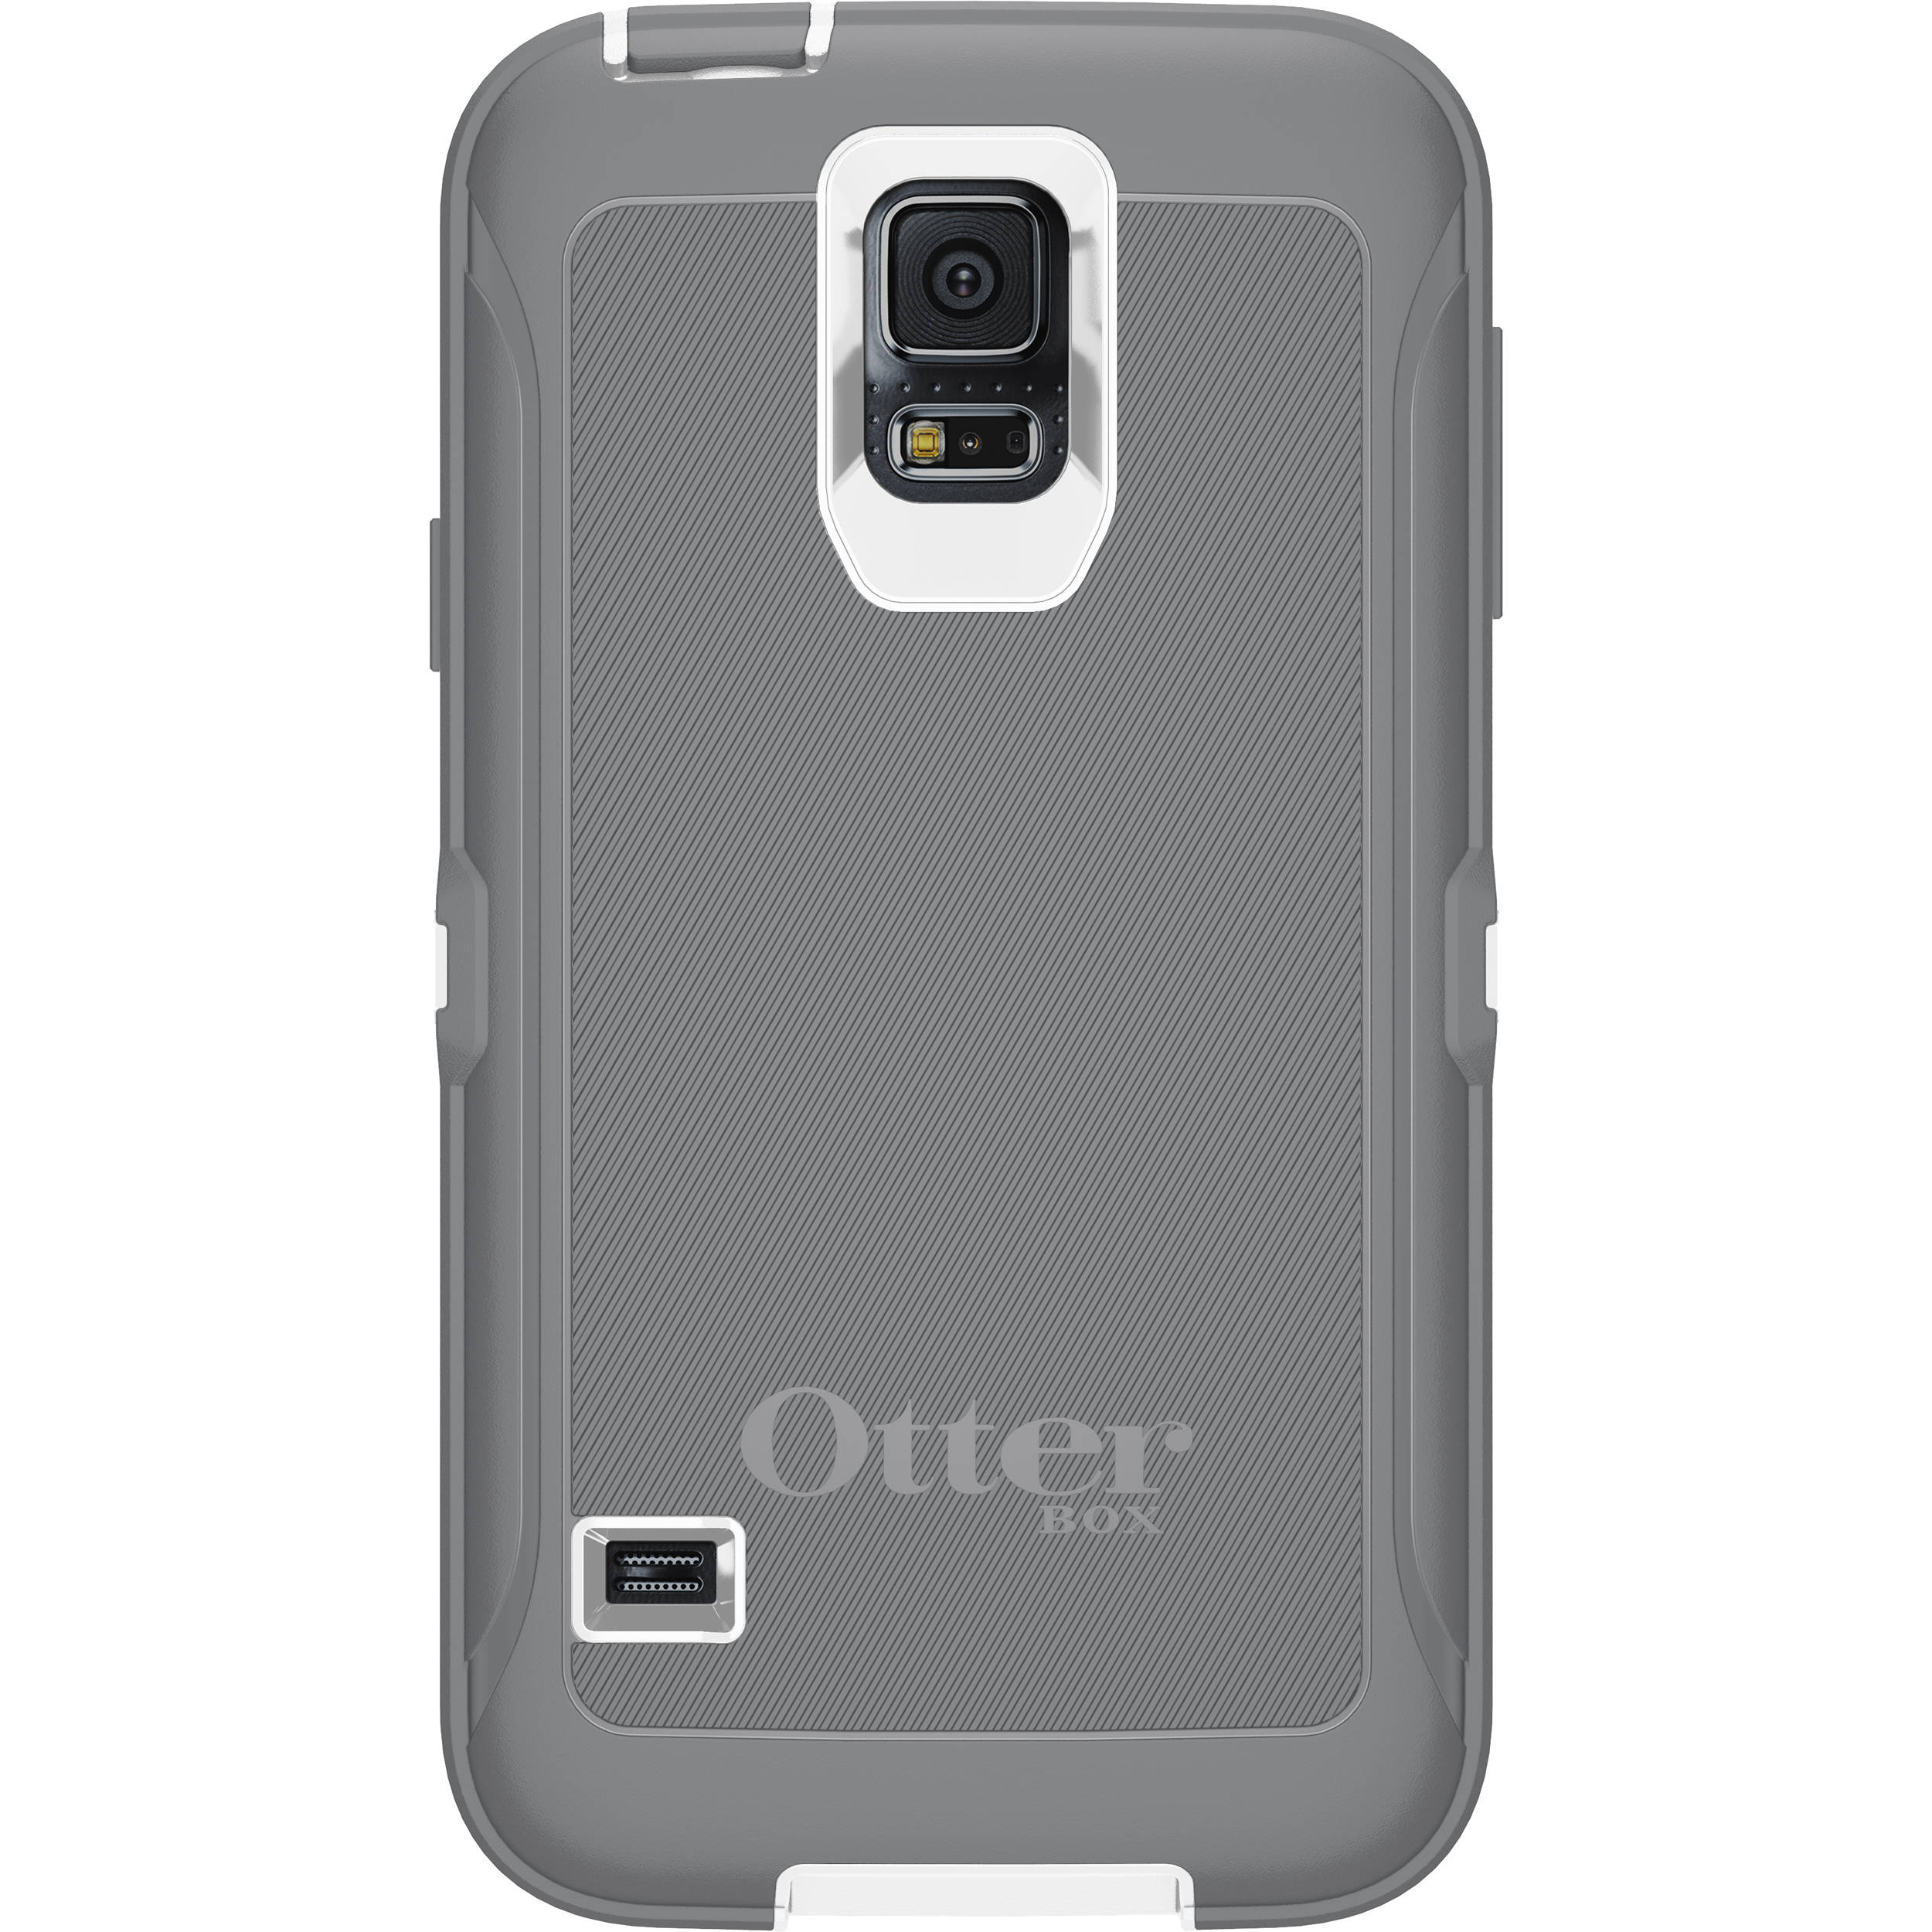 Otter Box Defender Case for Galaxy S5 77-38798 B&H Photo Video